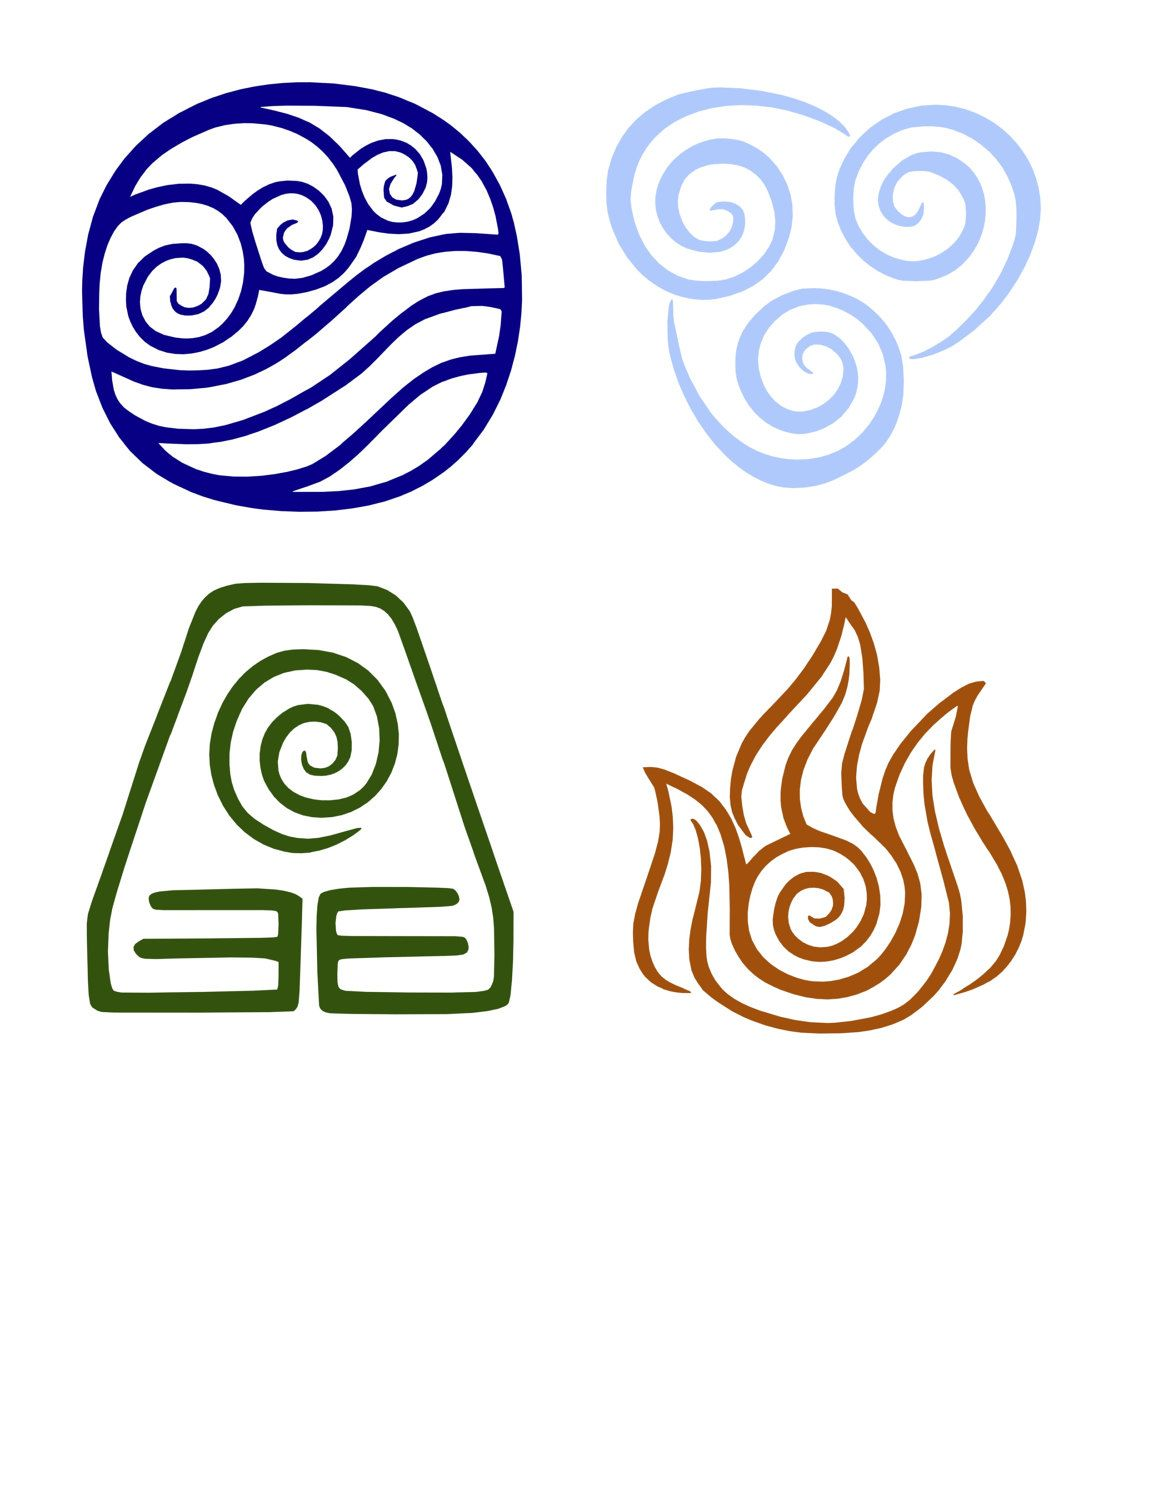 Avatar the last airbender the four elements avatar decal water earth fire air